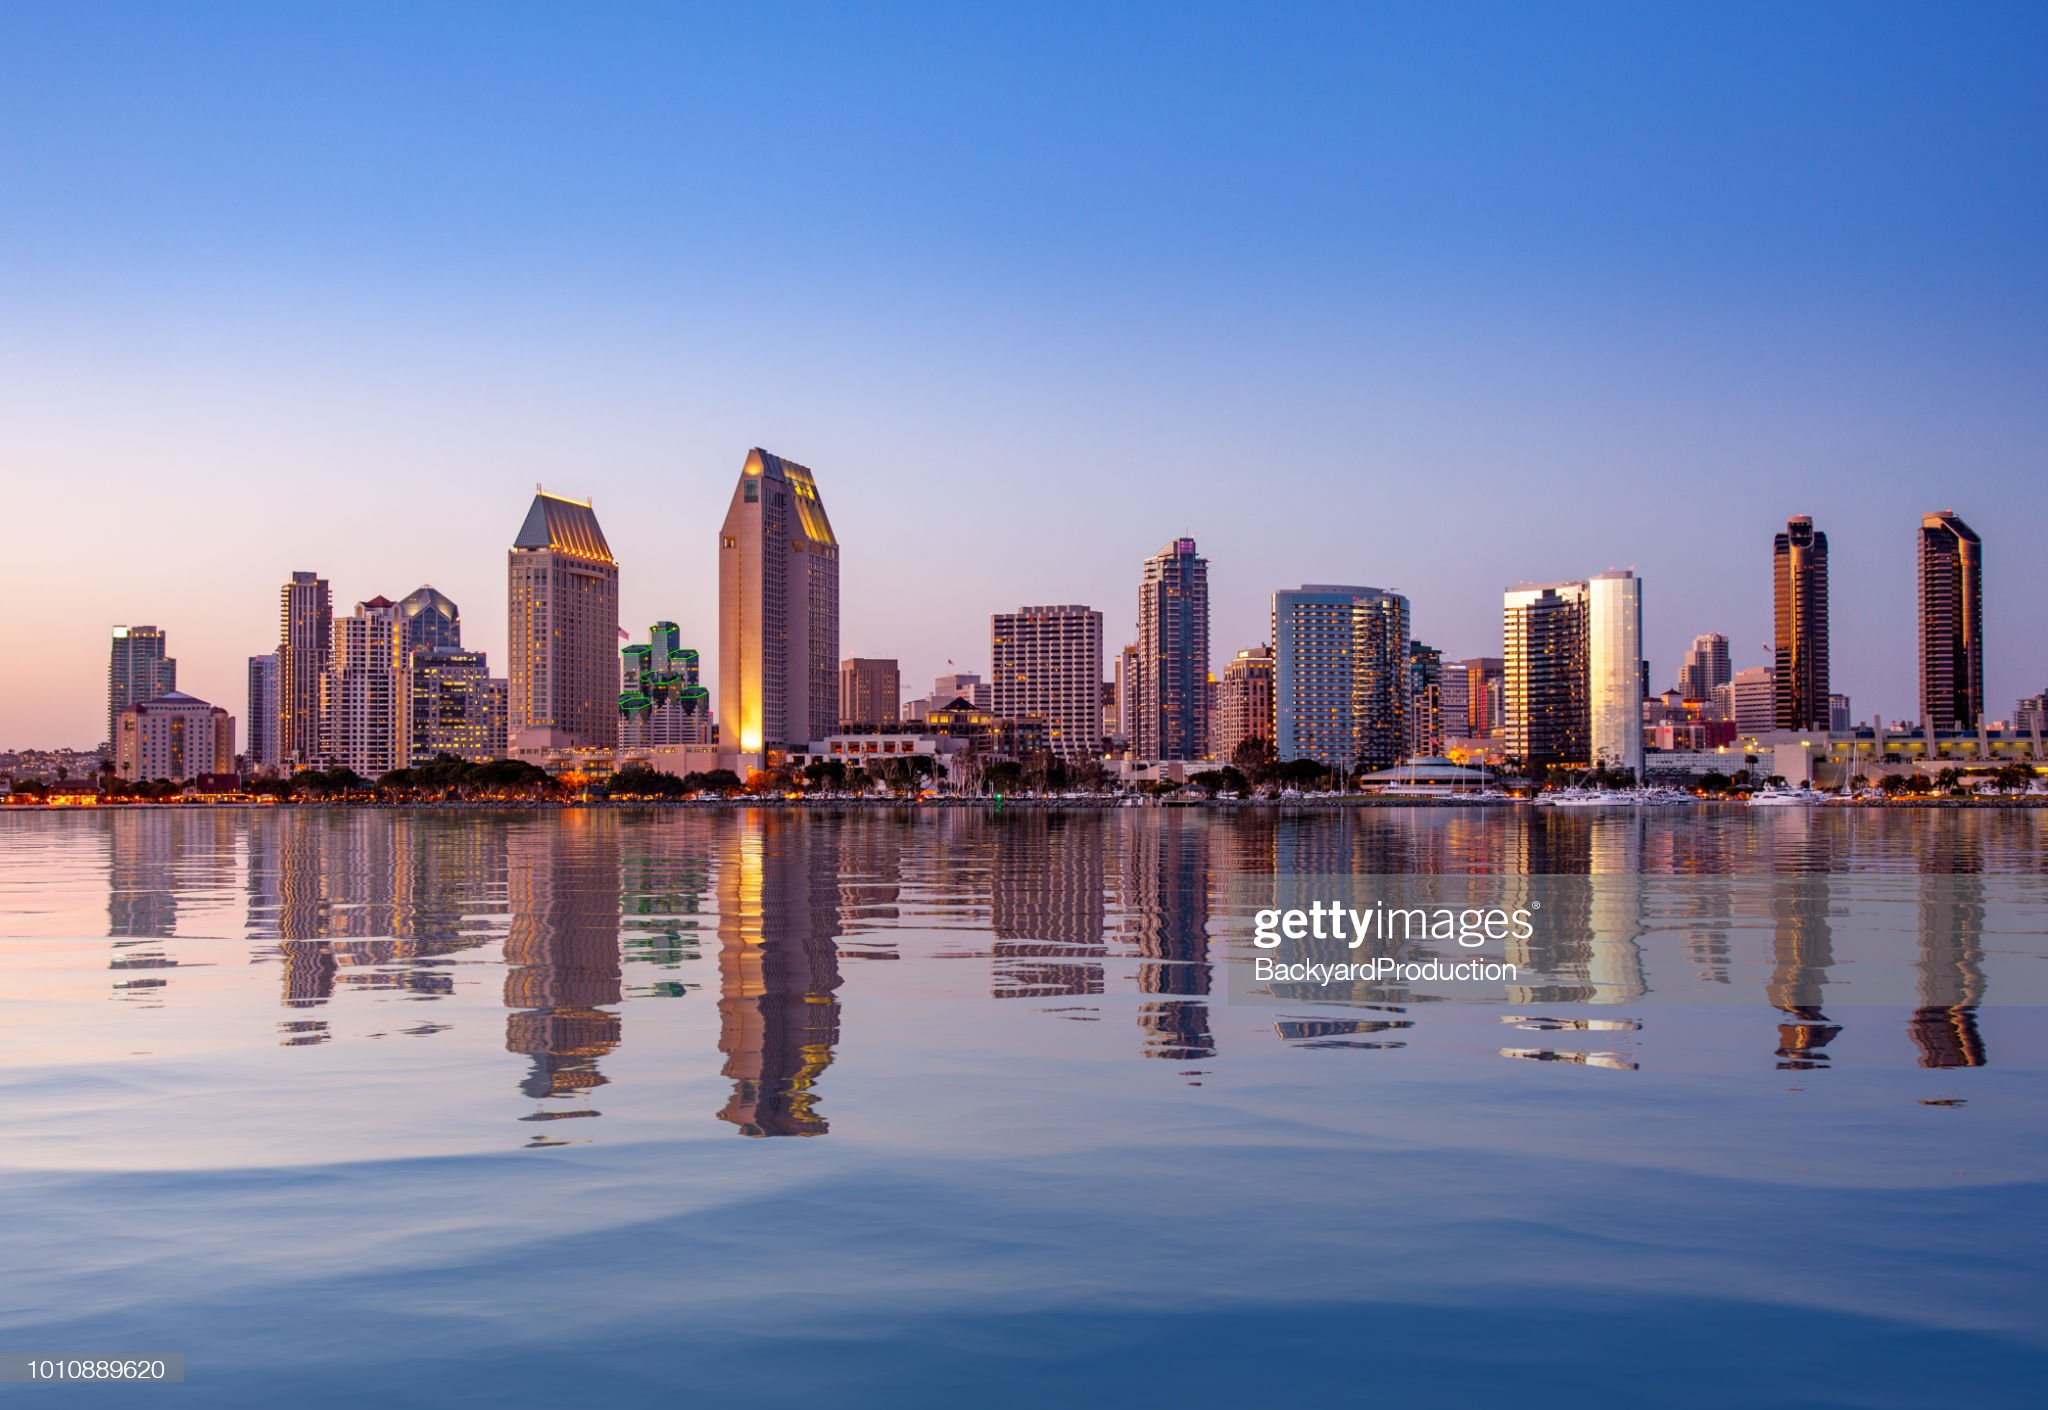 San Diego skyline with artificial water reflection